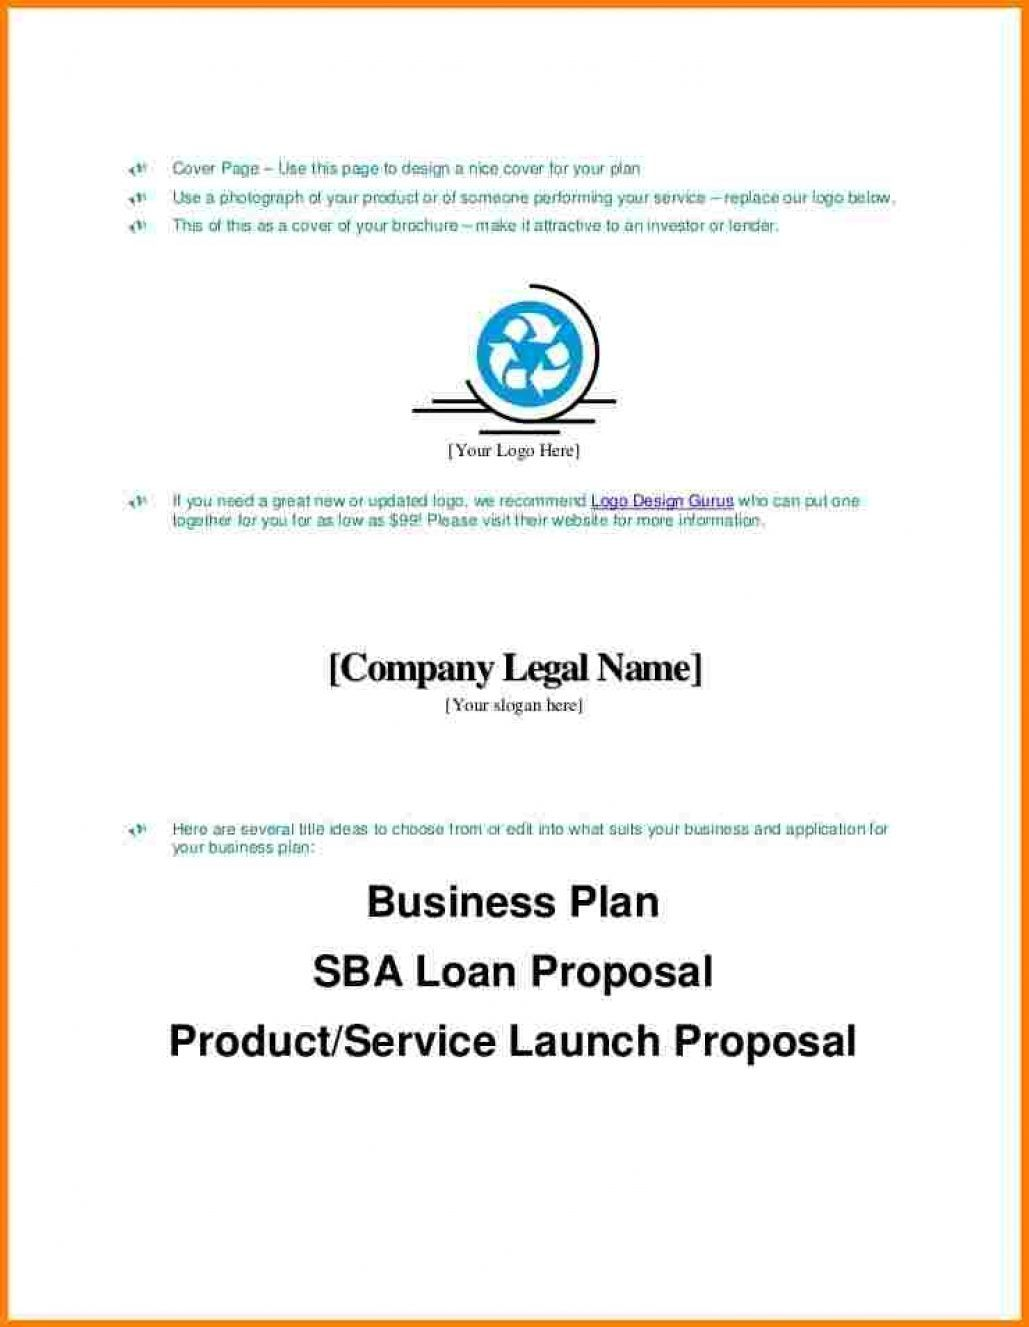 Business Plan Cover Page Sample Pdf Apa Format Letter with